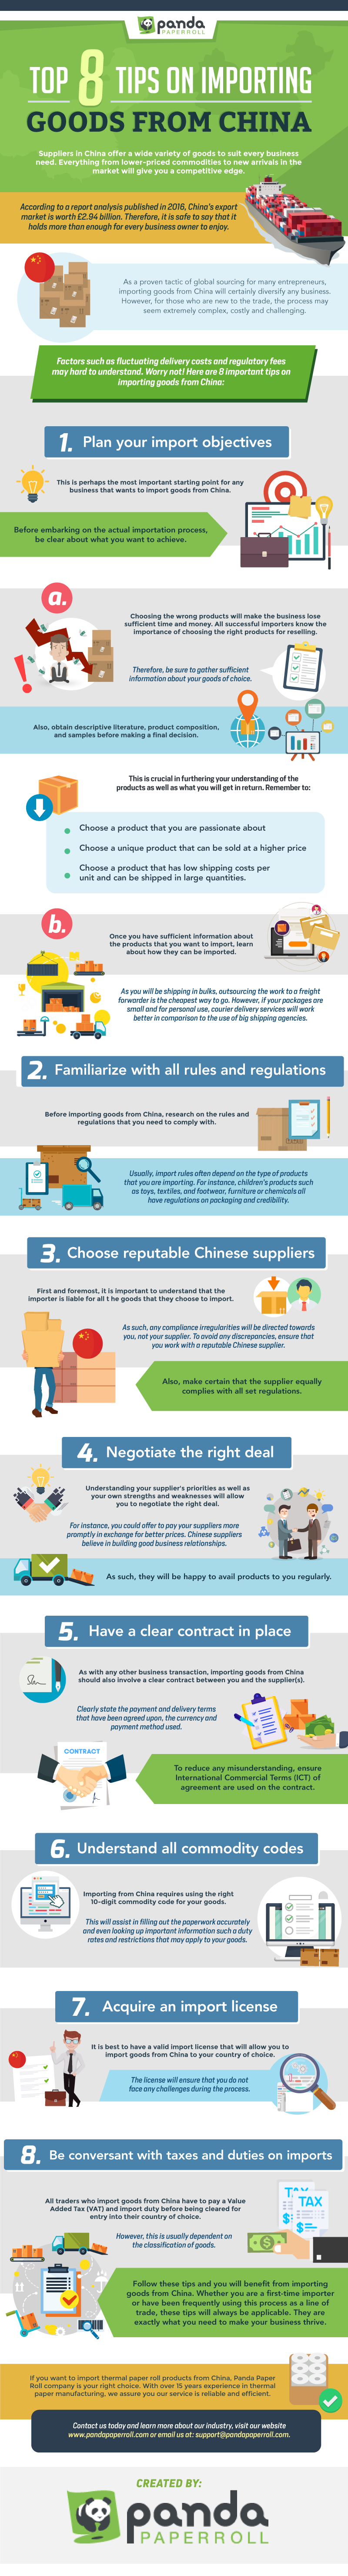 Top 8 Tips On Importing Goods From China